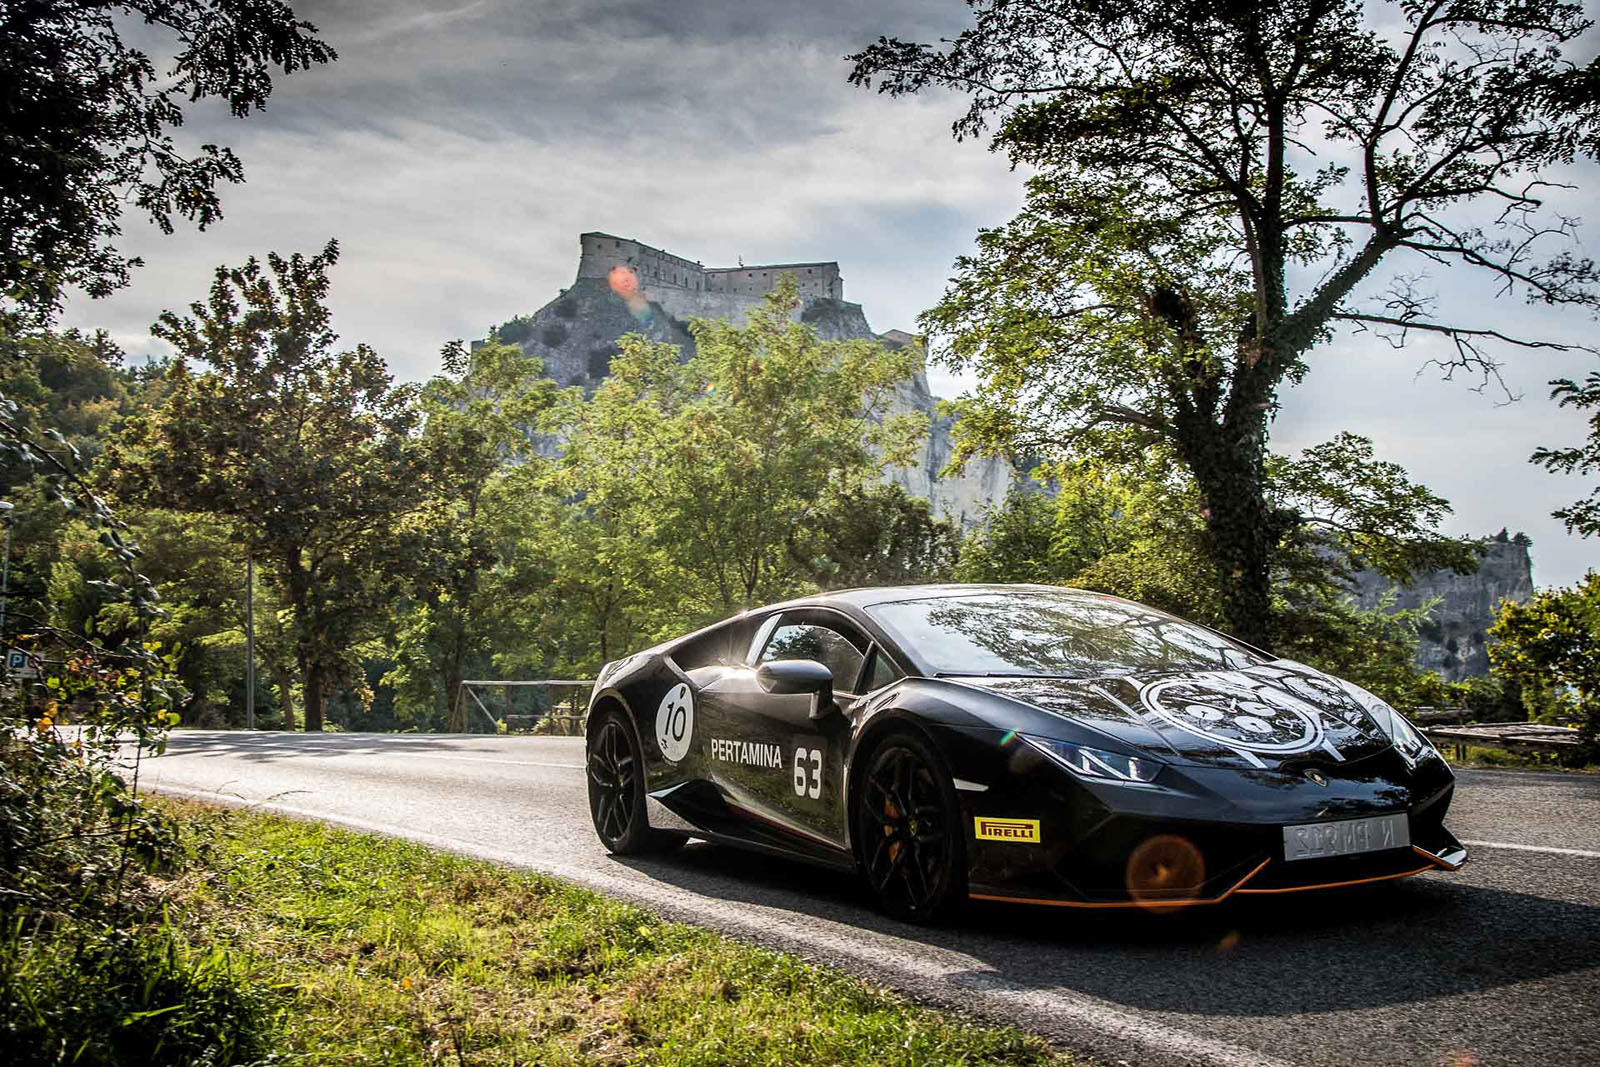 3 Days, 30 Lamborghinis and the Beauty of Italy: The Italian Tour 2016 1